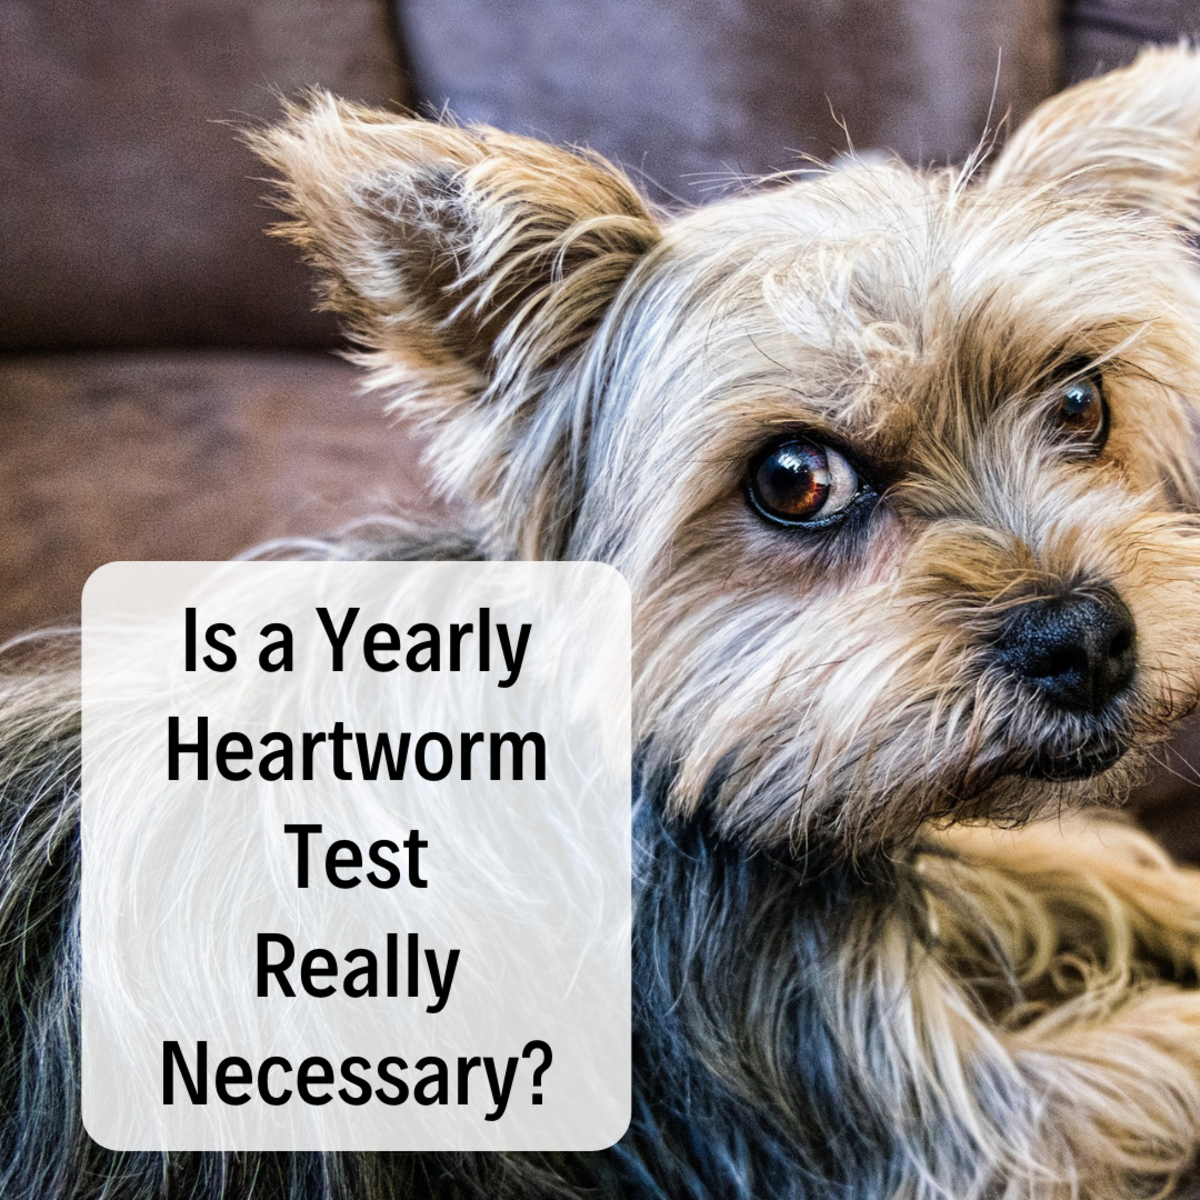 Find out whether your dog really needs an annual heartworm test if they're already on  heartworm preventative.